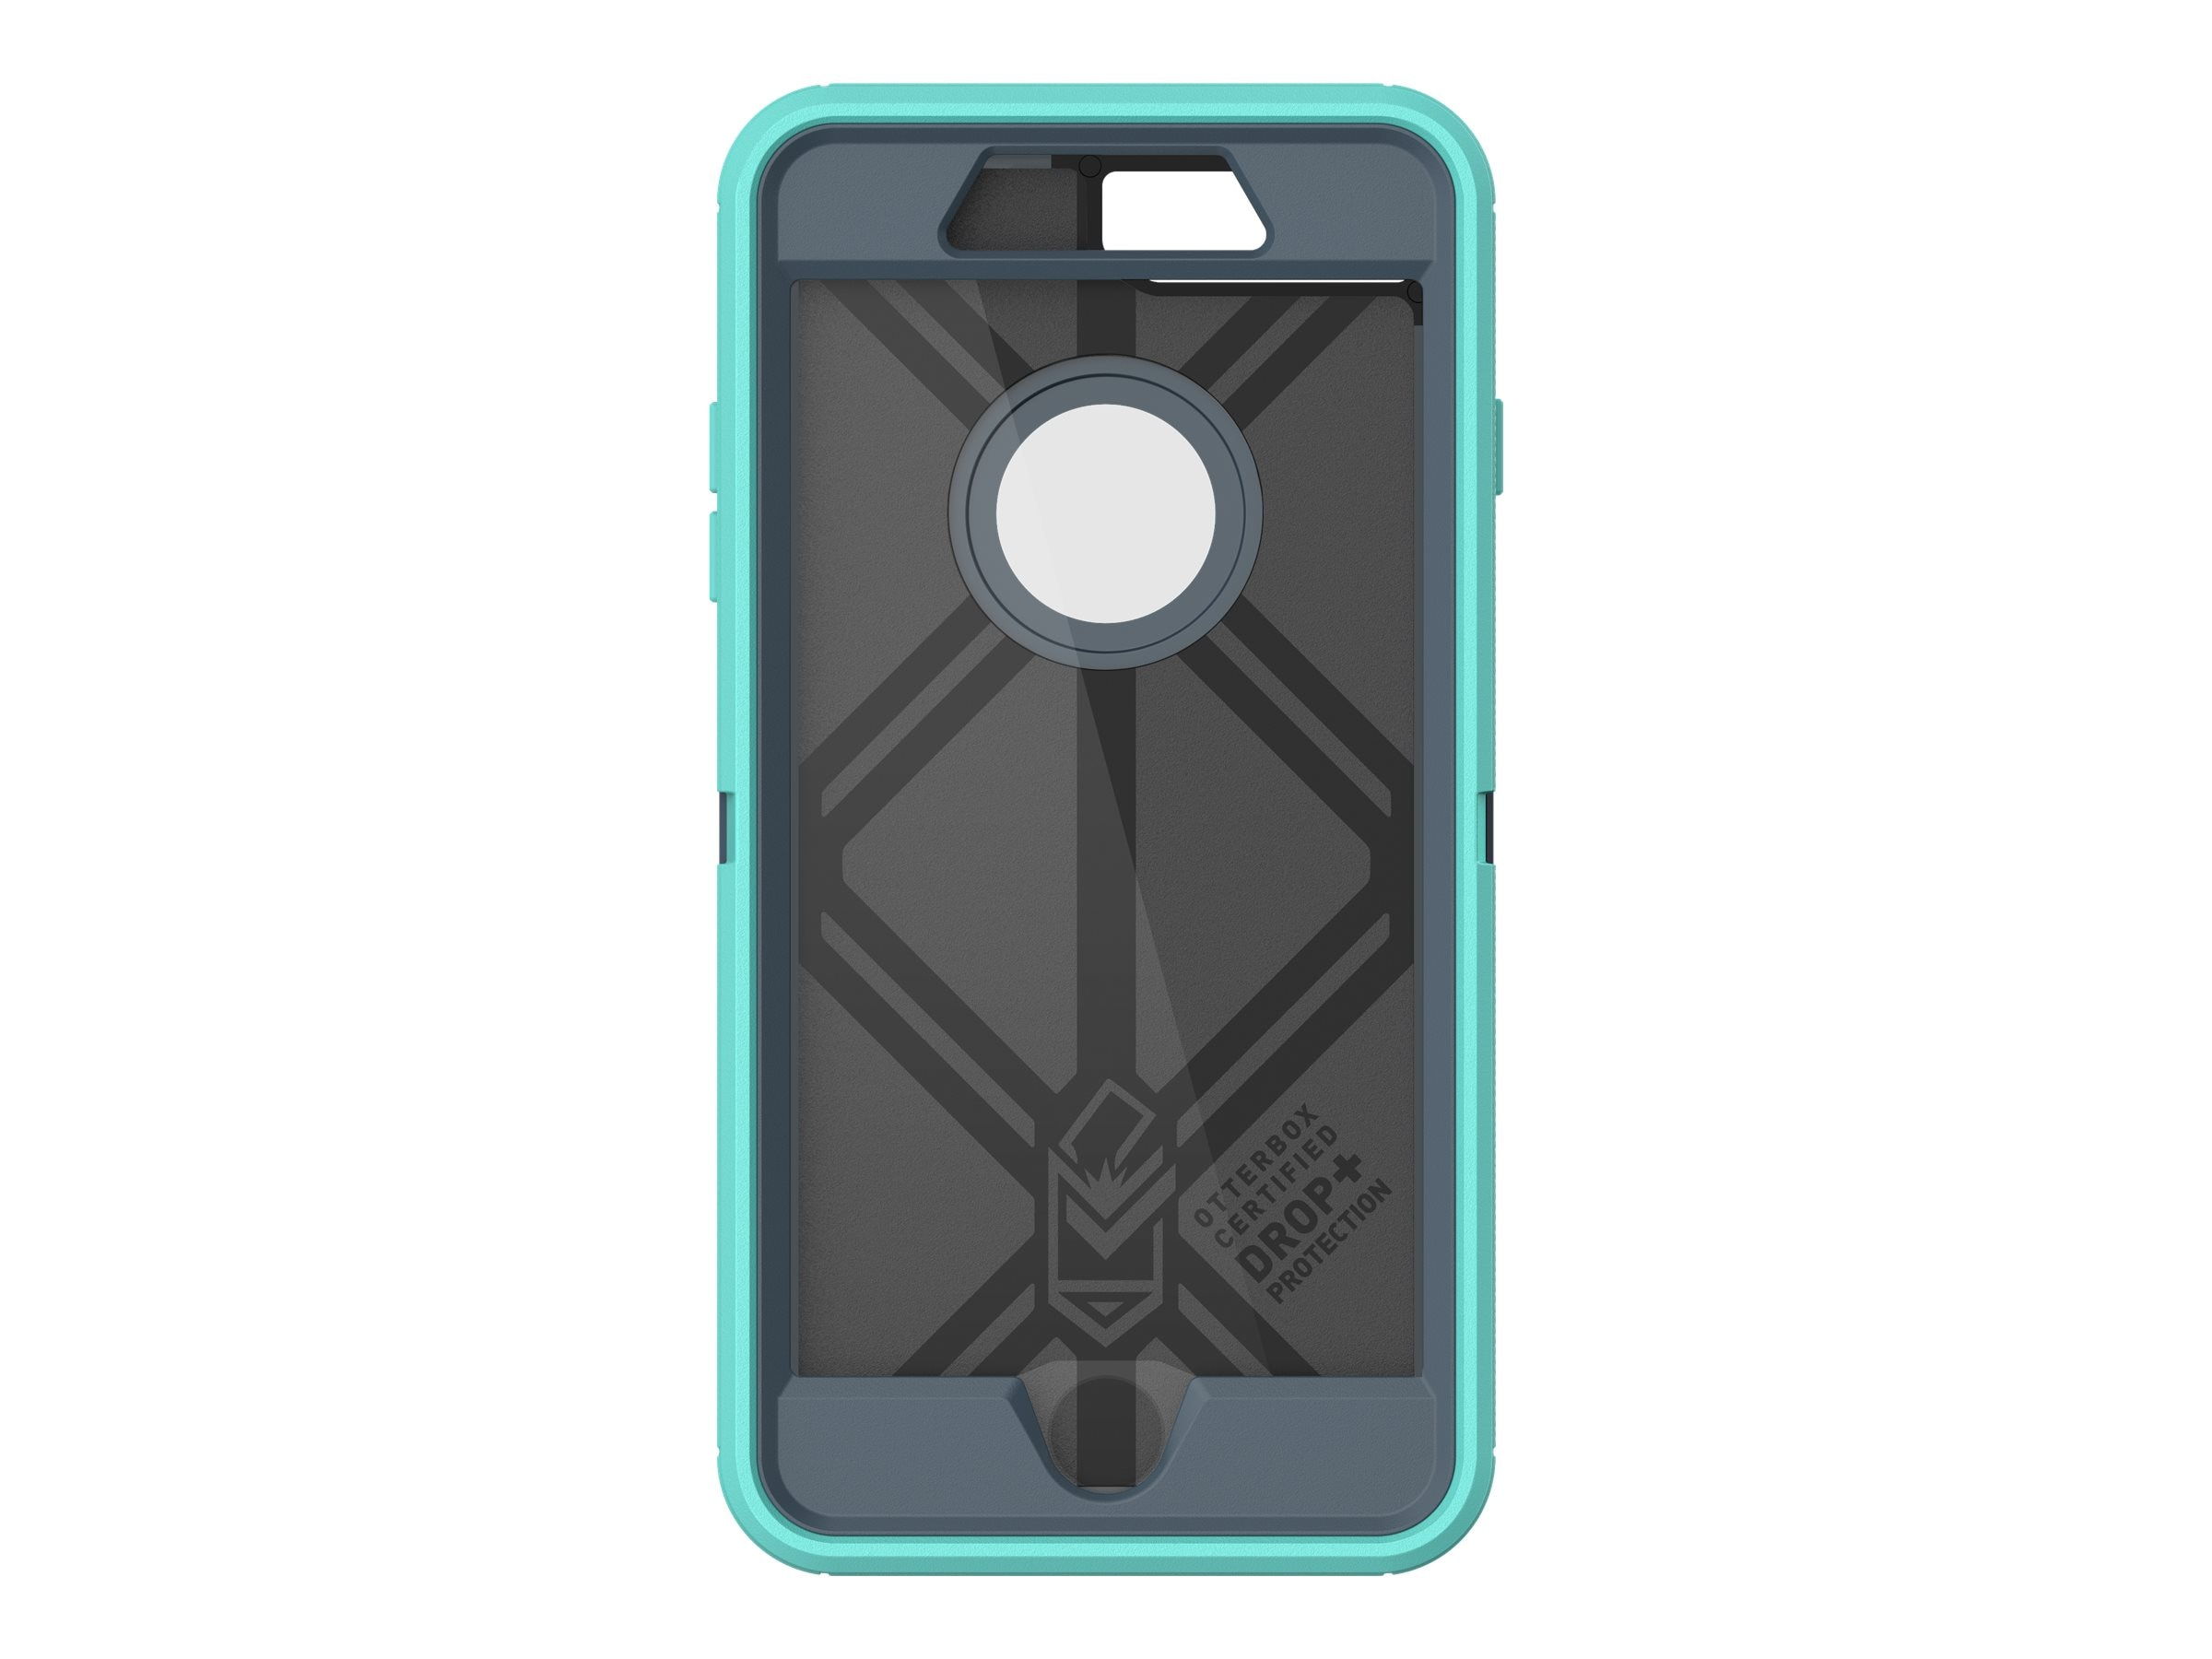 OtterBox Defender Case for iPhone 7, Borealis